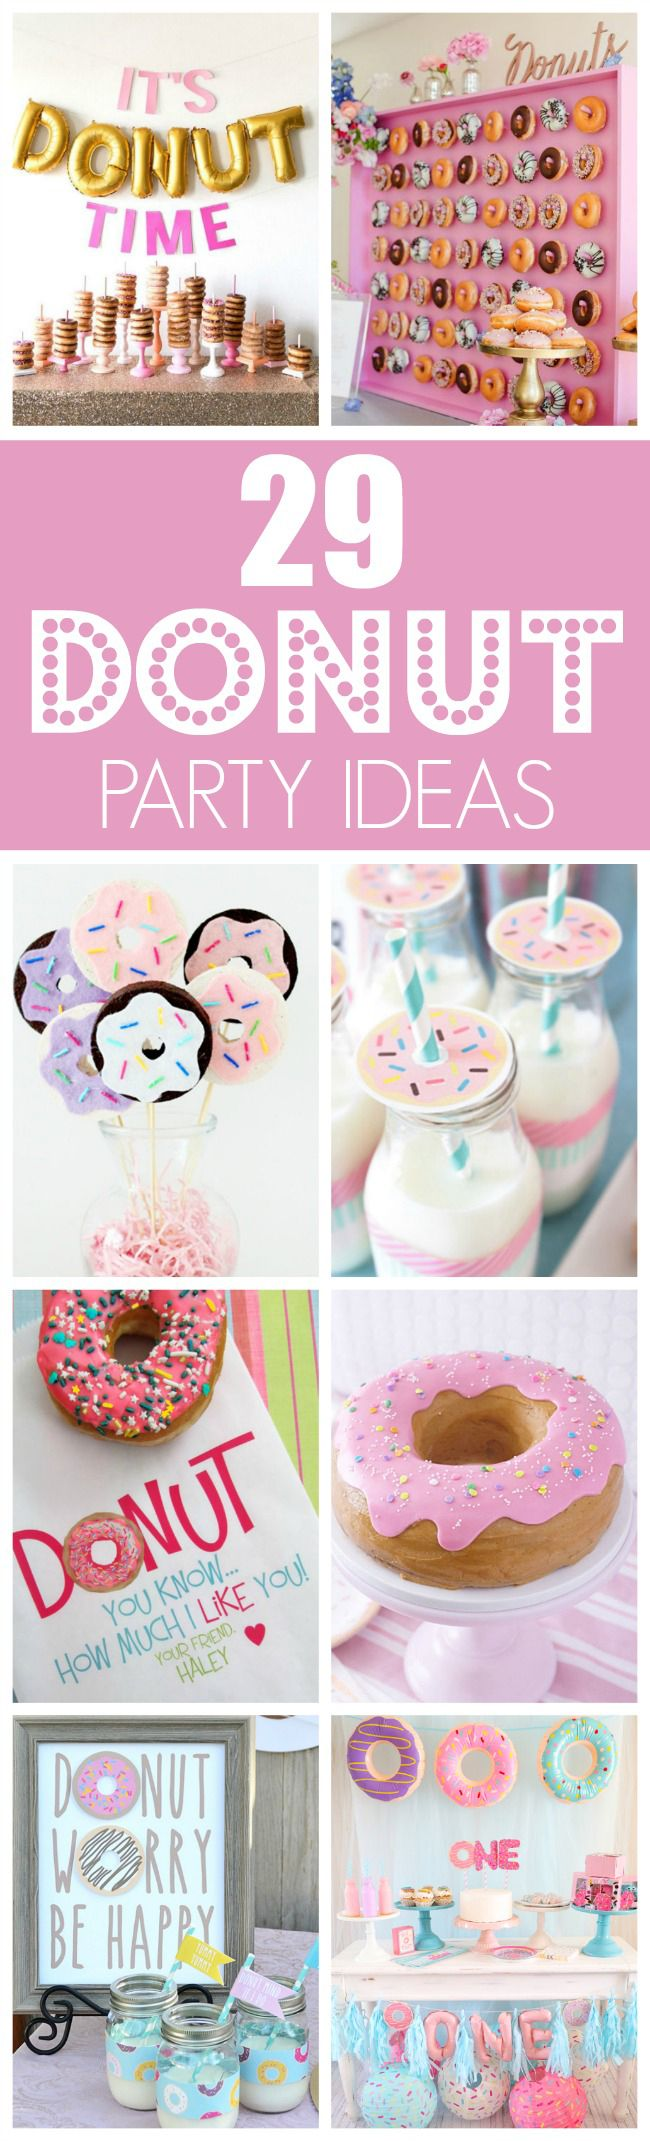 29 Fantastic Donut Themed Party Ideas featured on Pretty My Party